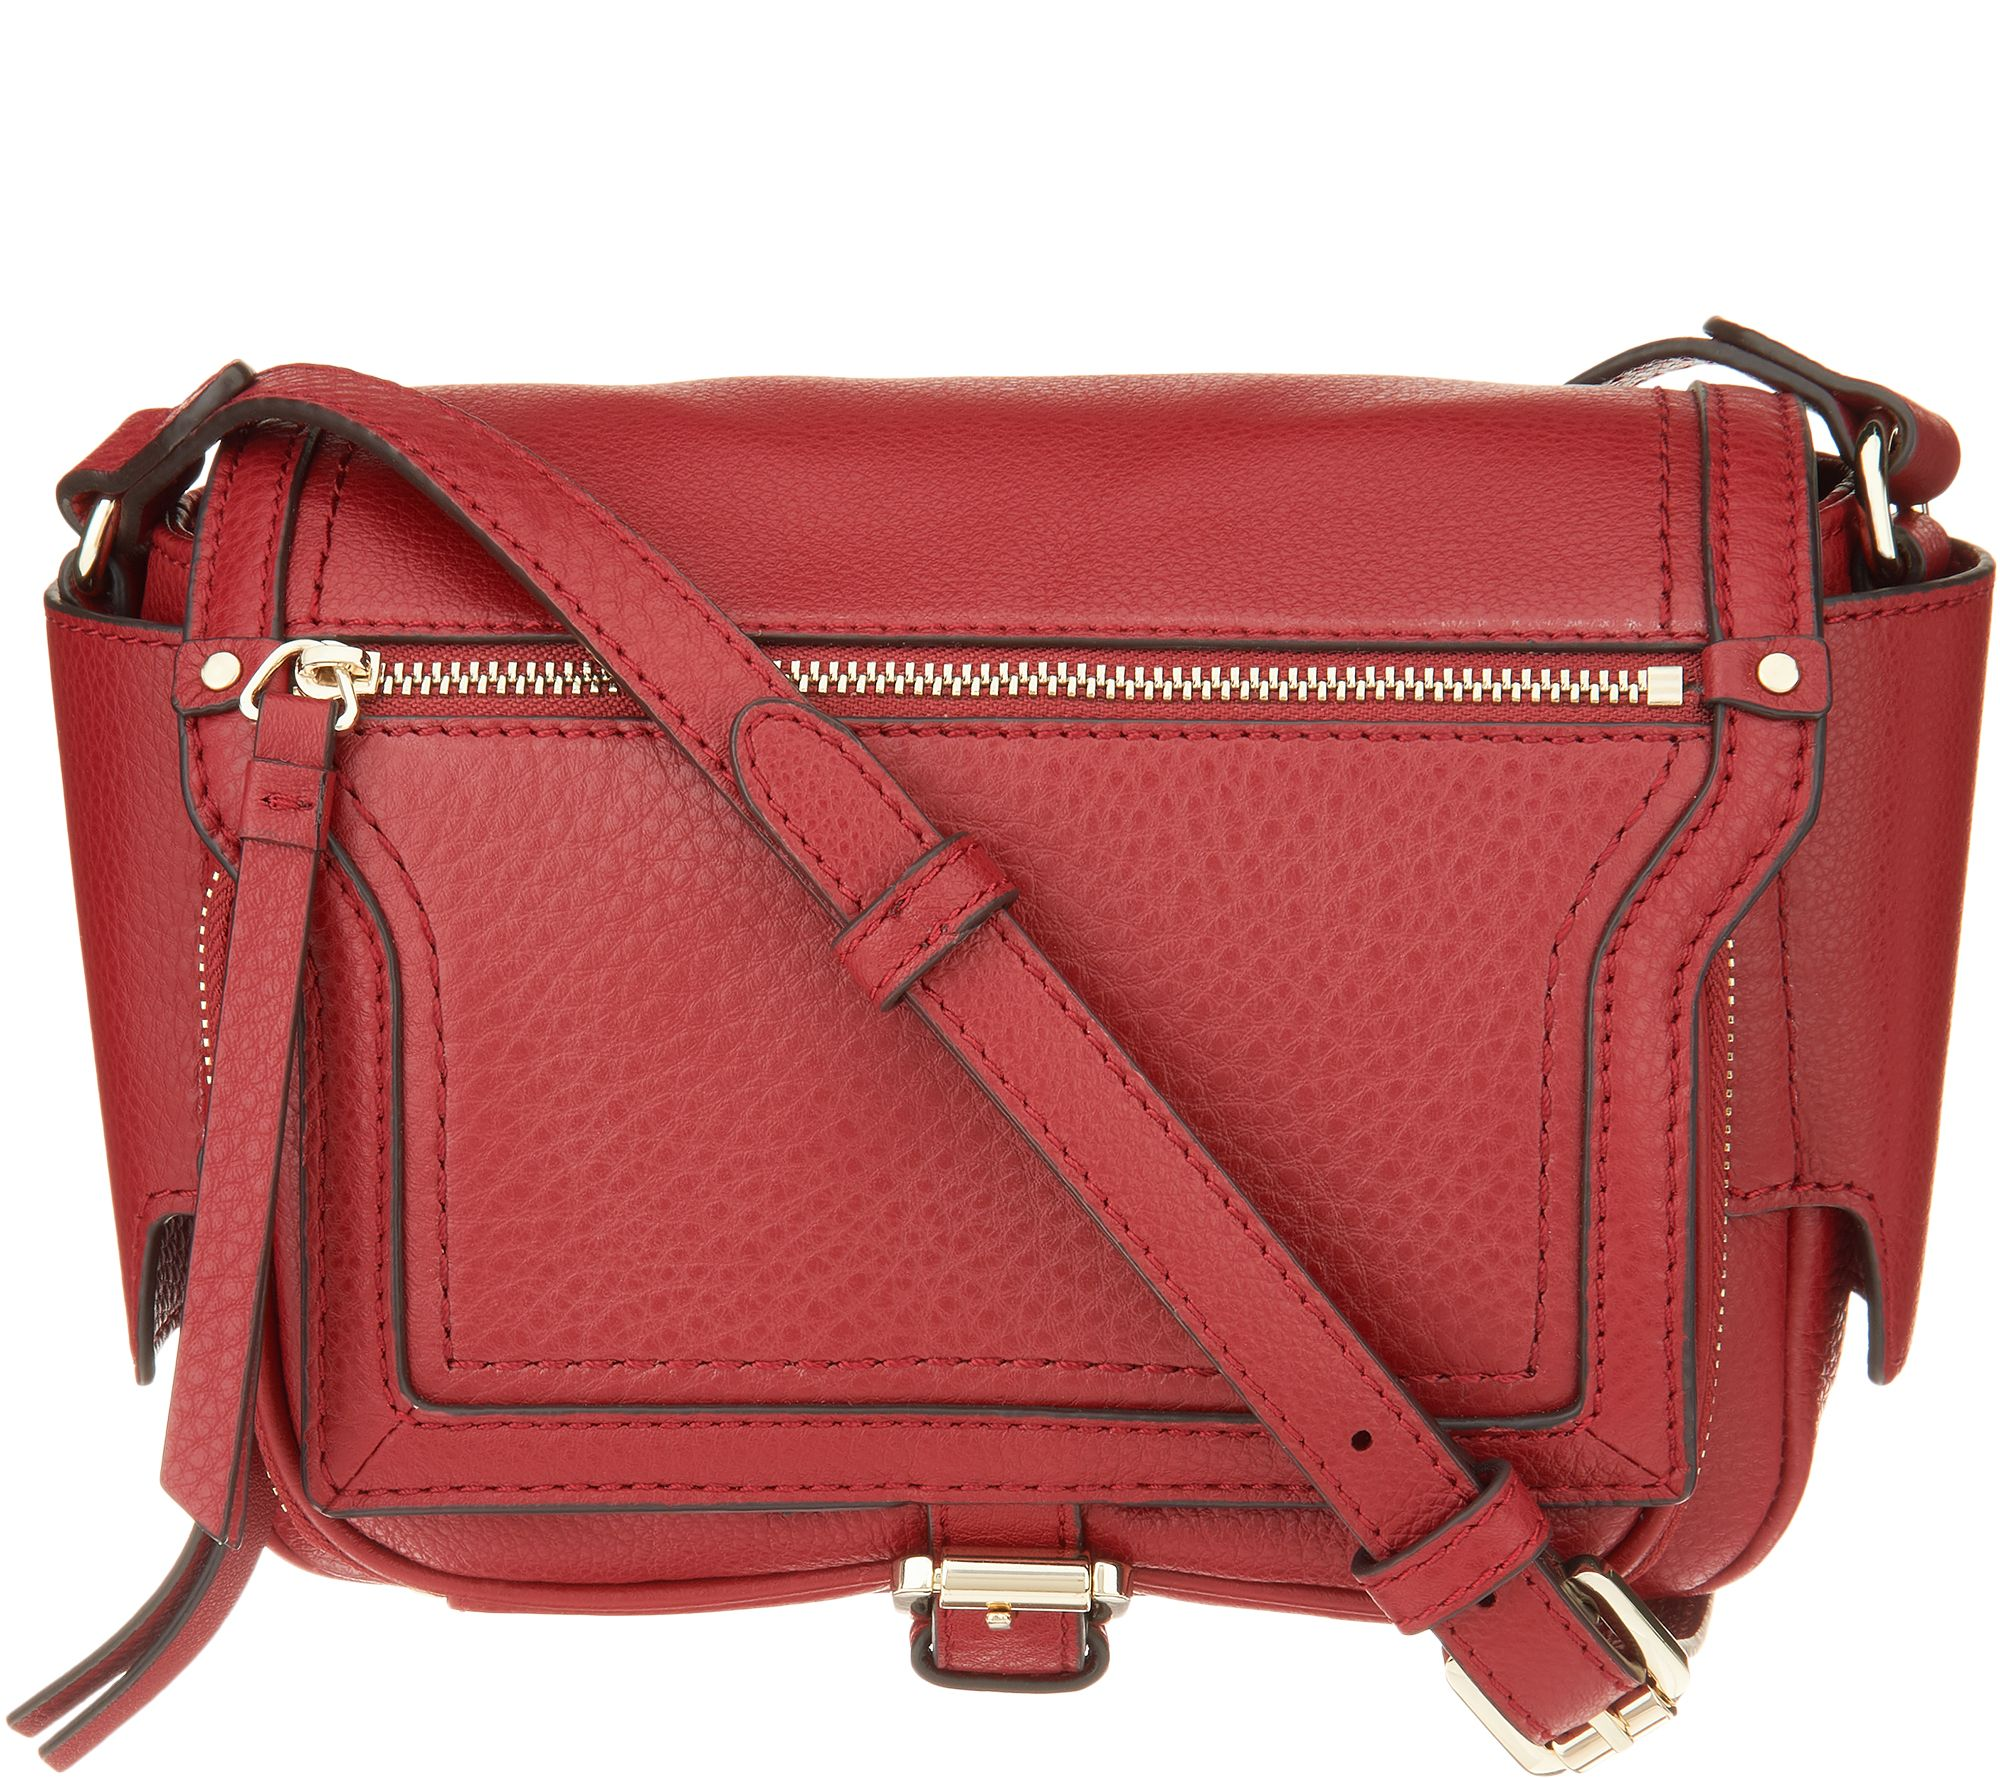 570181d07c51 Vince Camuto Leather Crossbody - Dot - Page 1 — QVC.com